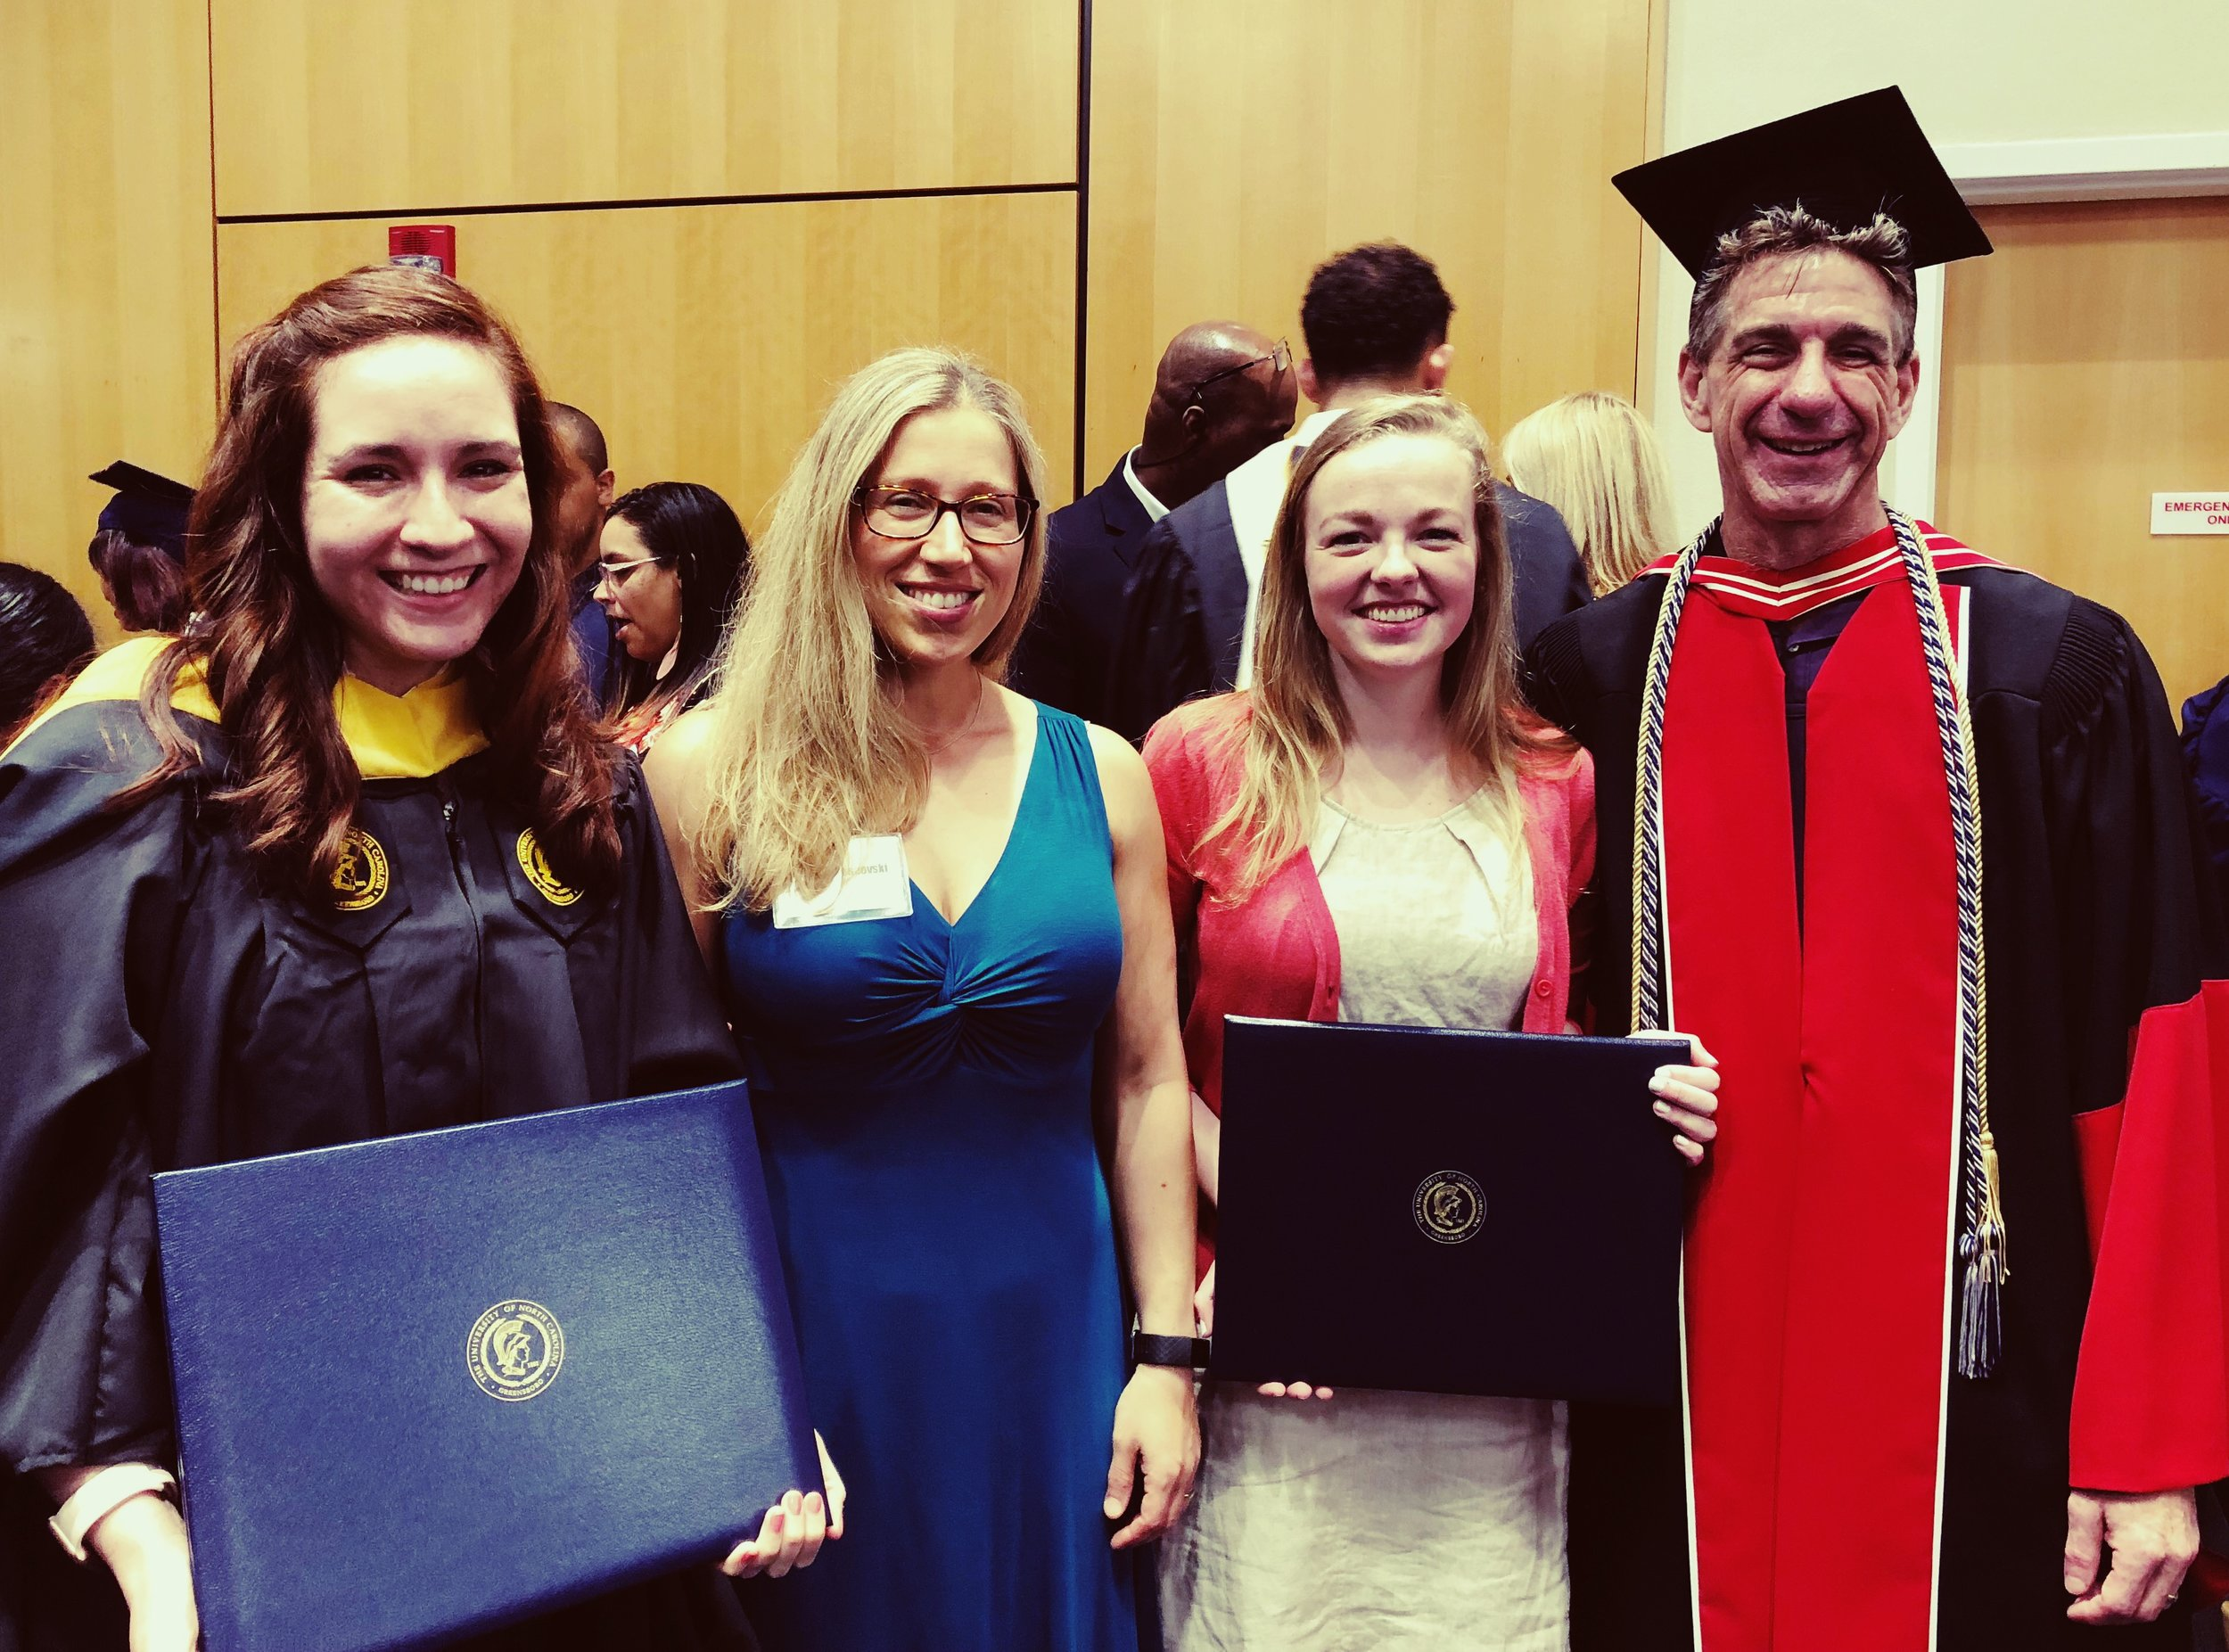 (from left to right) Andrea, Dr. Boseovski, Rachel, and Dr. Marcovitch at the Psychology Department graduation ceremony